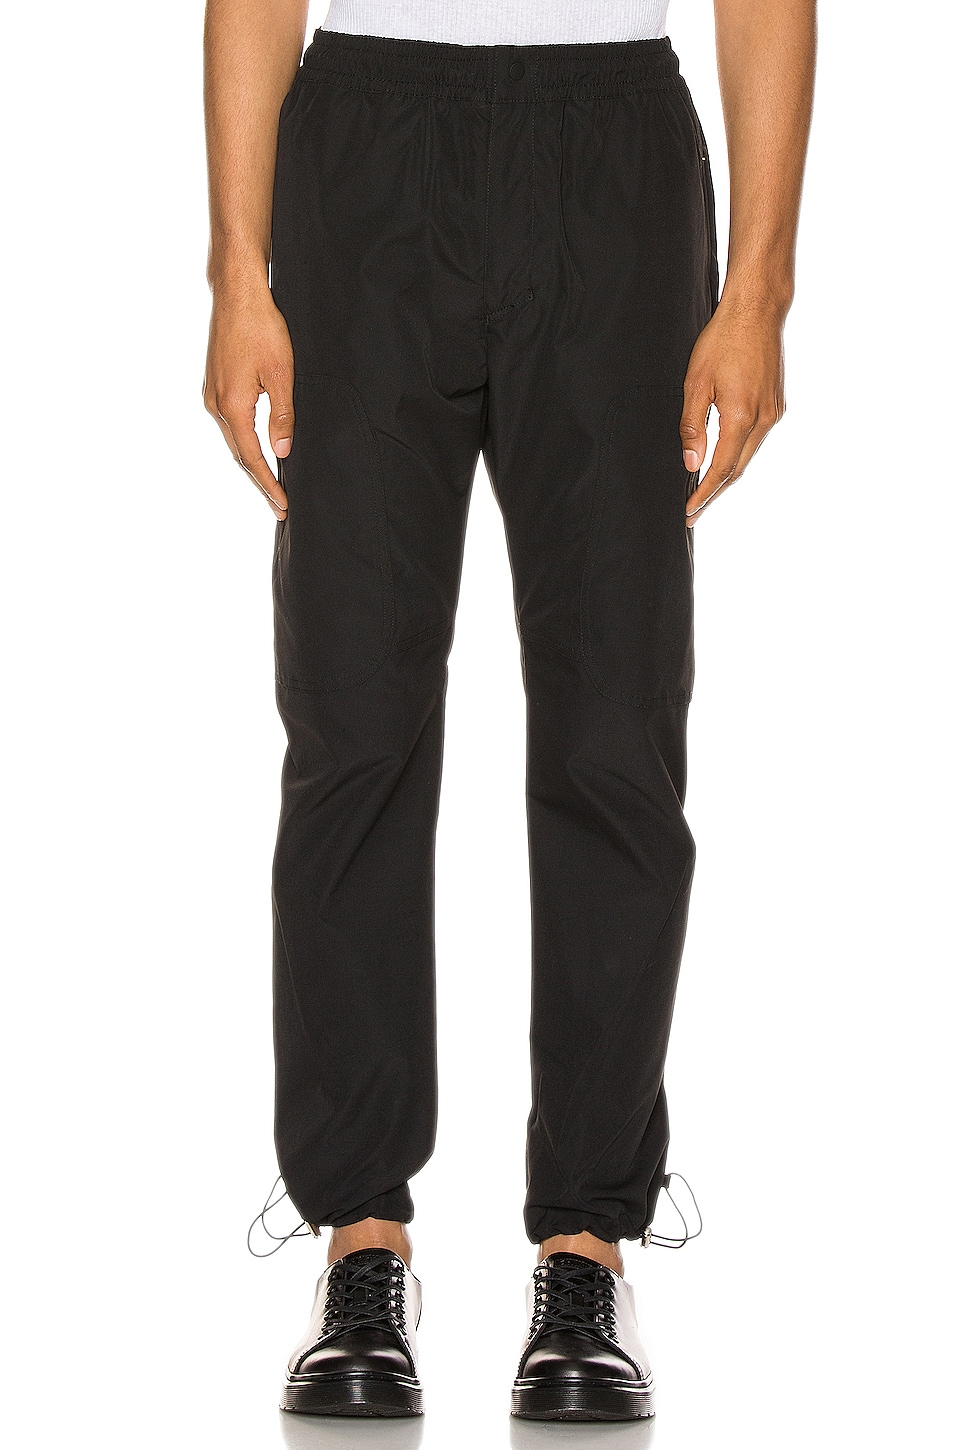 Zanerobe Jumpa Tech Pant in Black